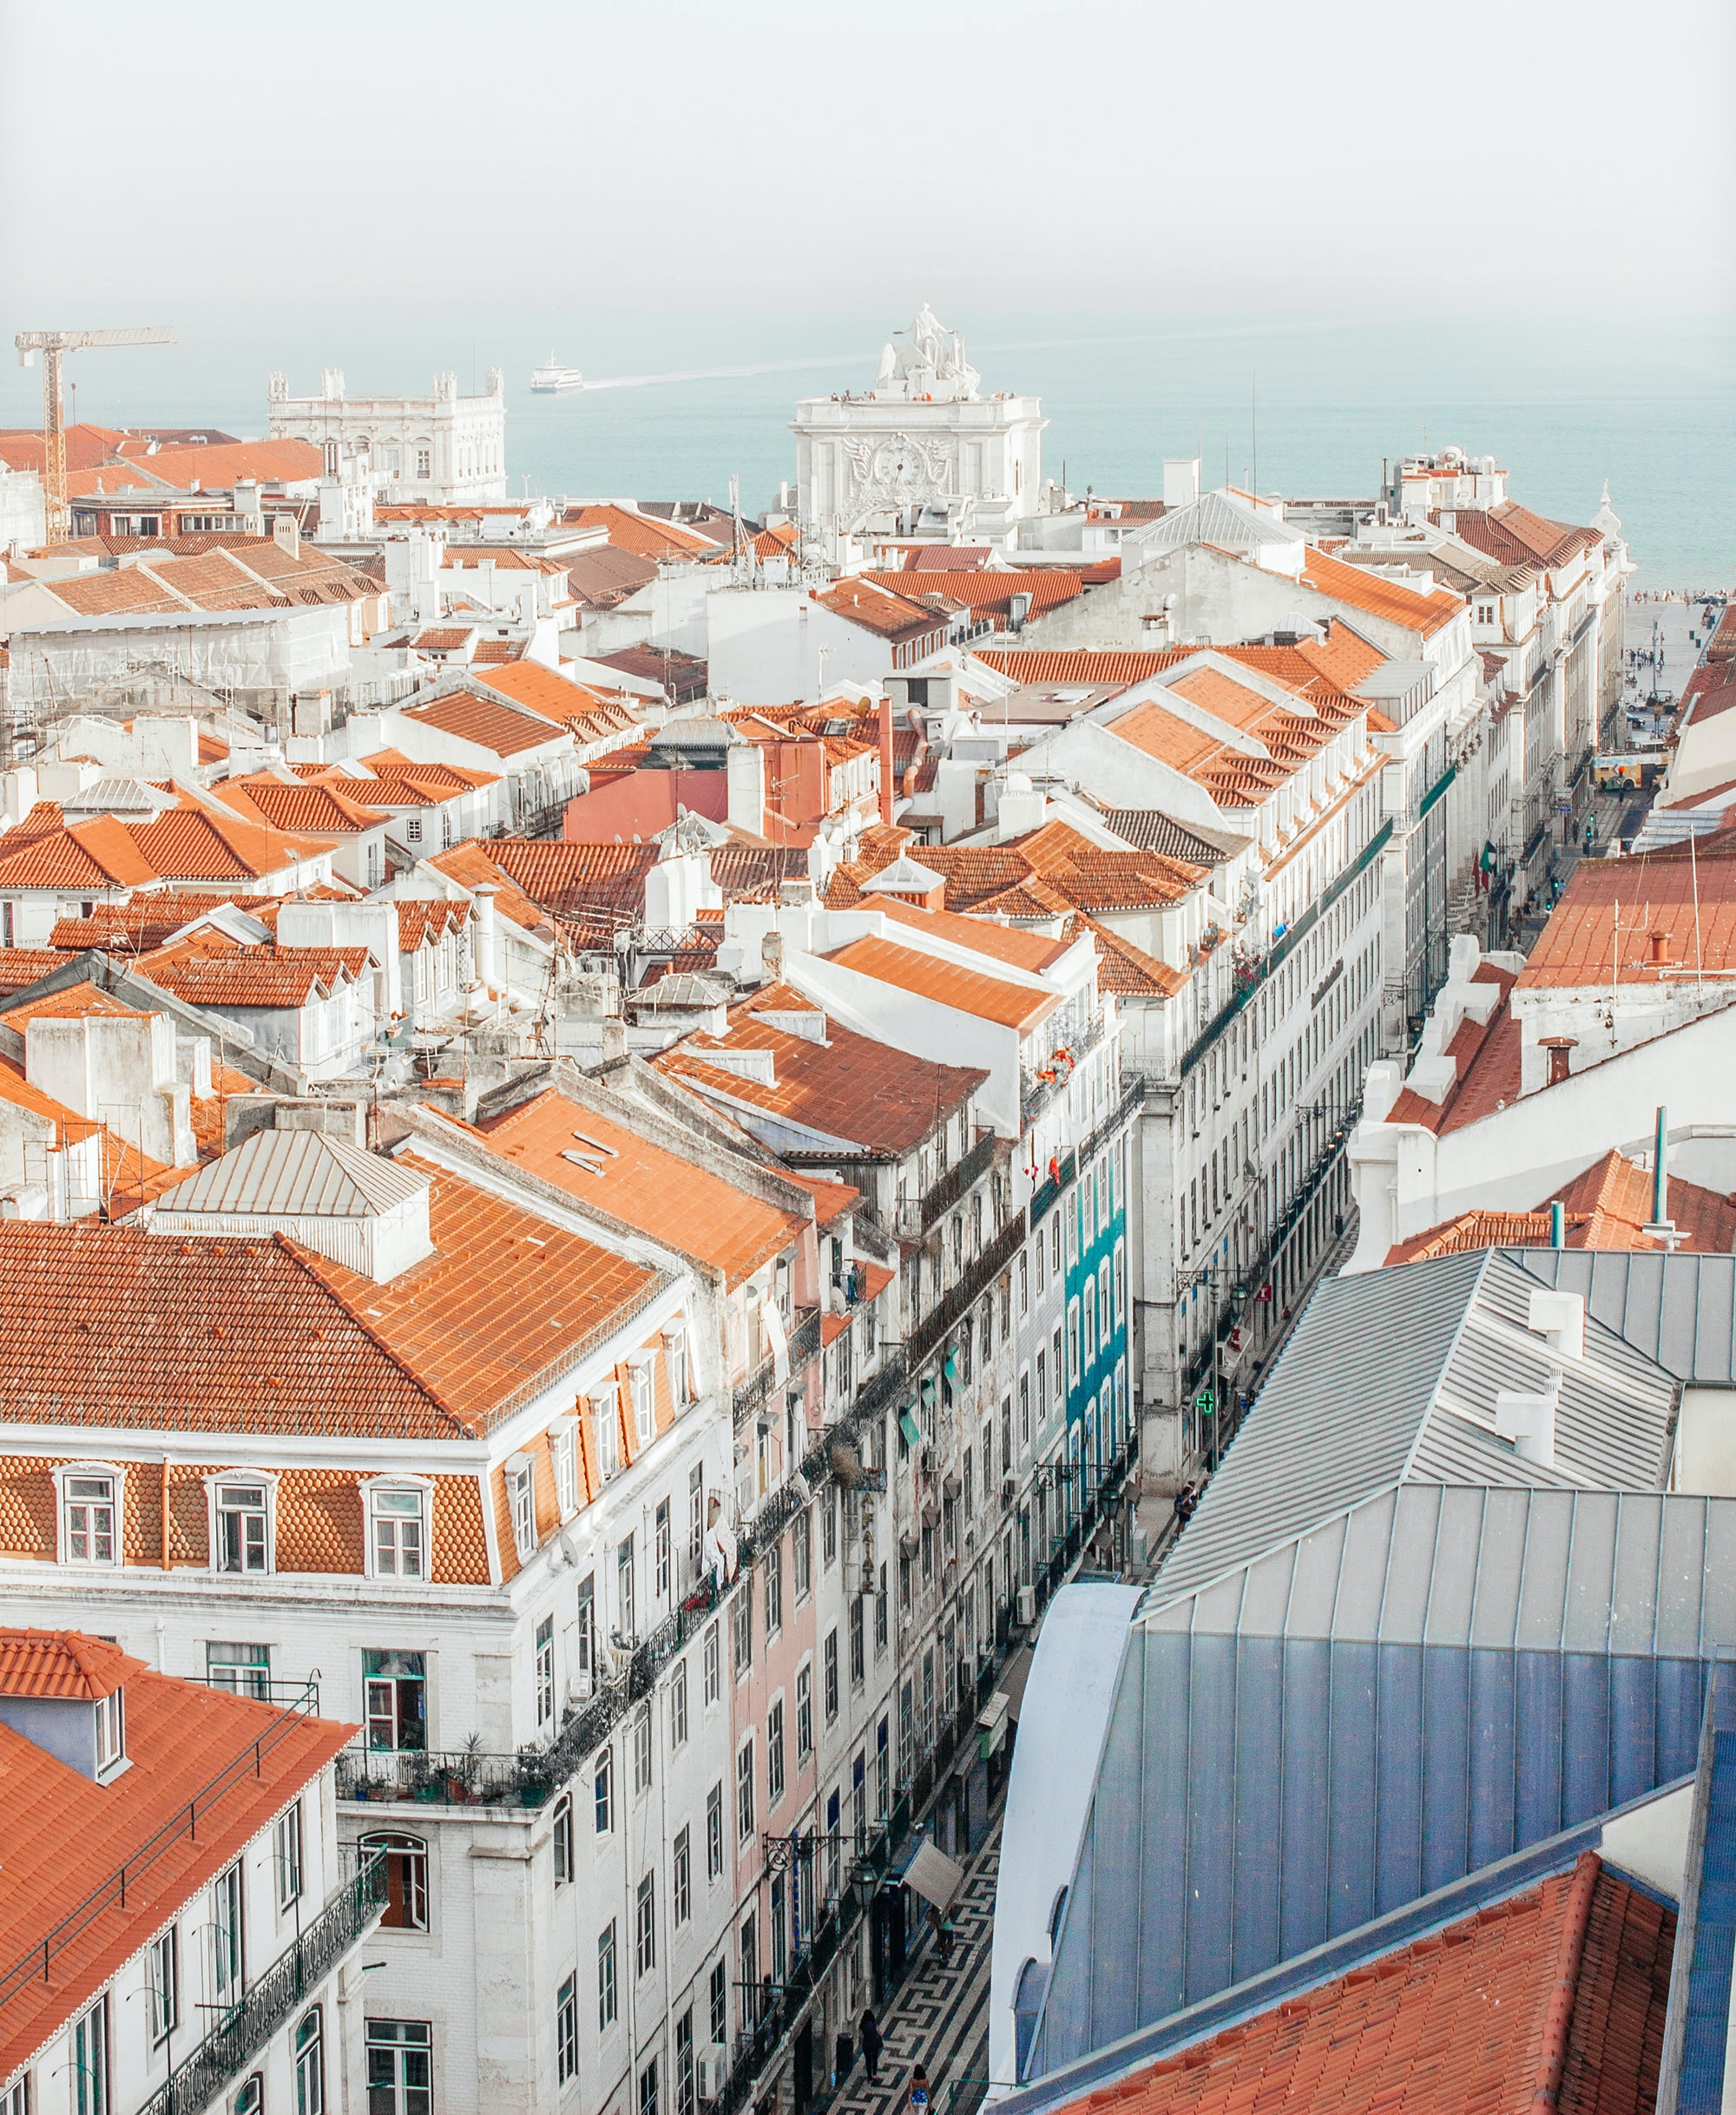 Red-roofed tenement houses near the marina in Lisbon